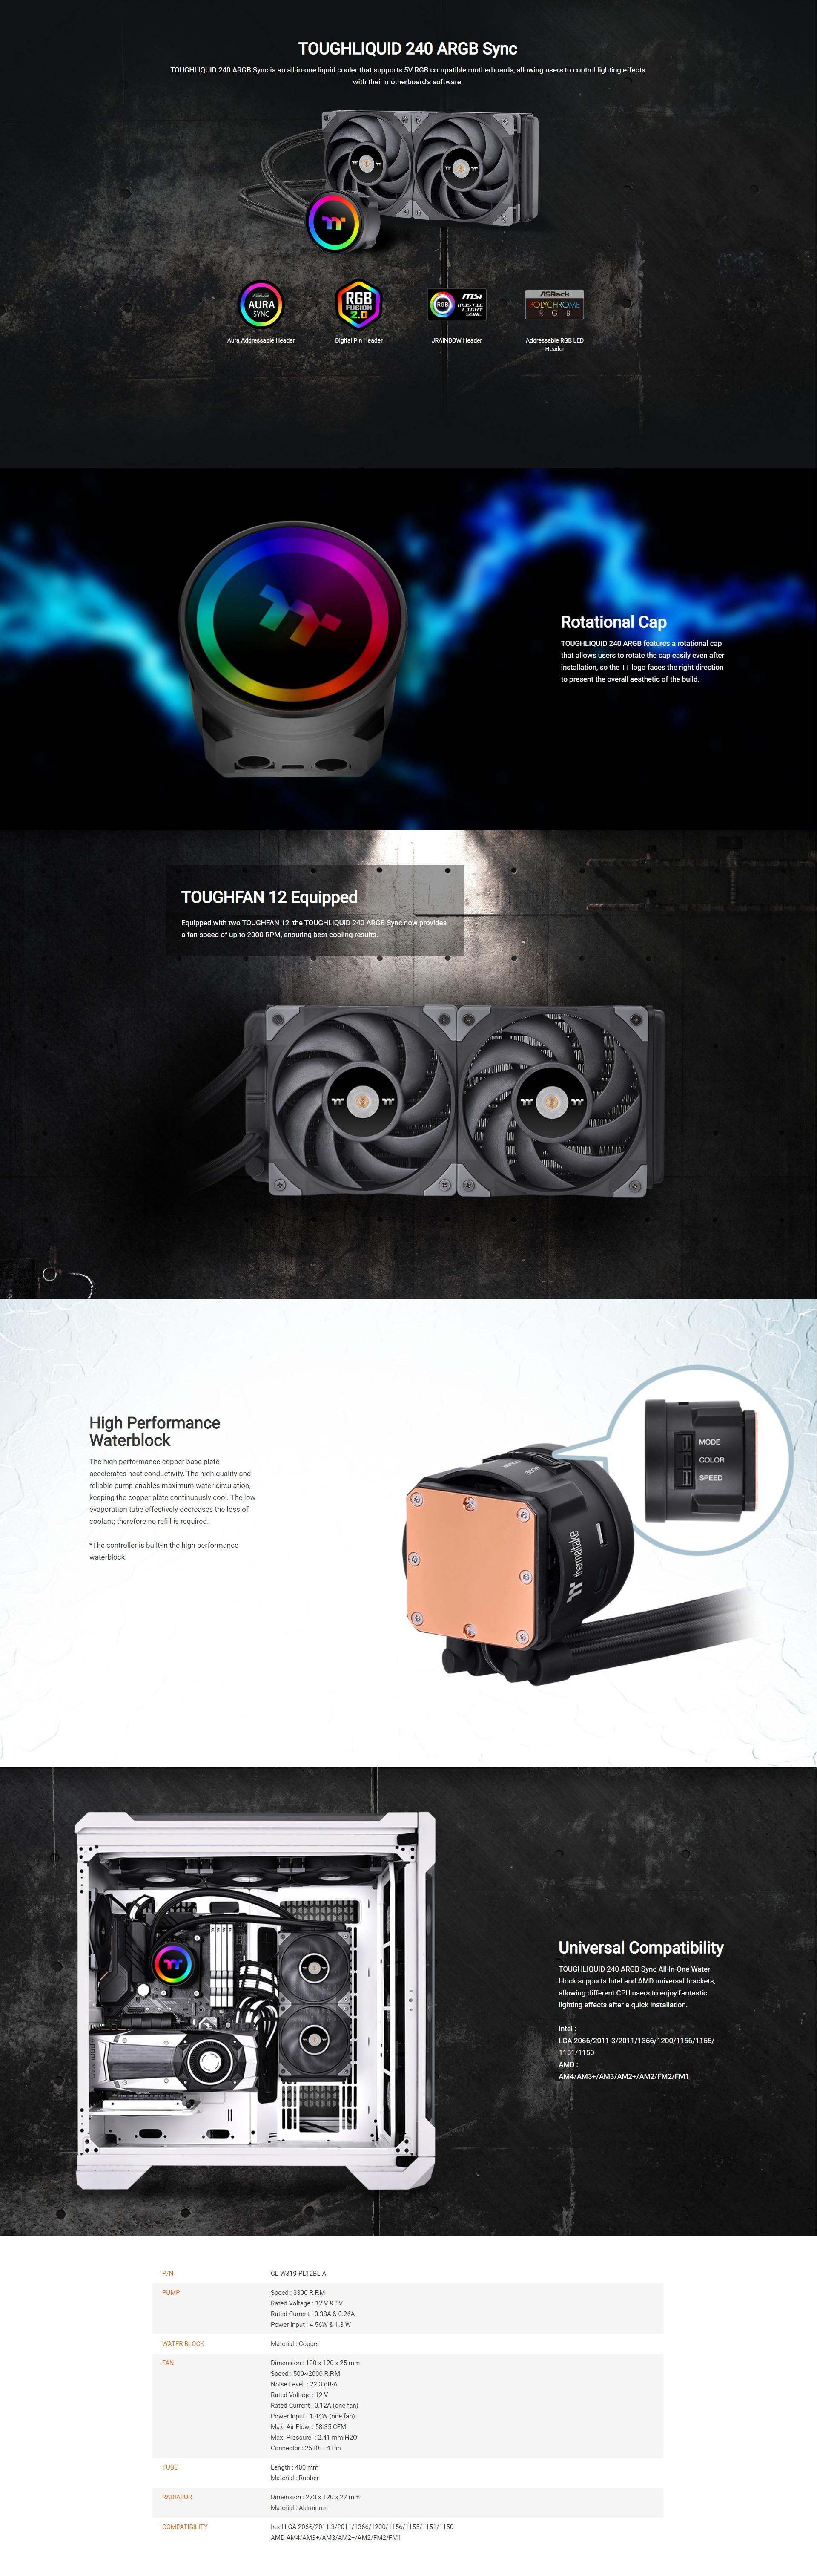 A large marketing image providing additional information about the product Thermaltake ToughLiquid ARGB 240 CPU Cooler - Additional alt info not provided